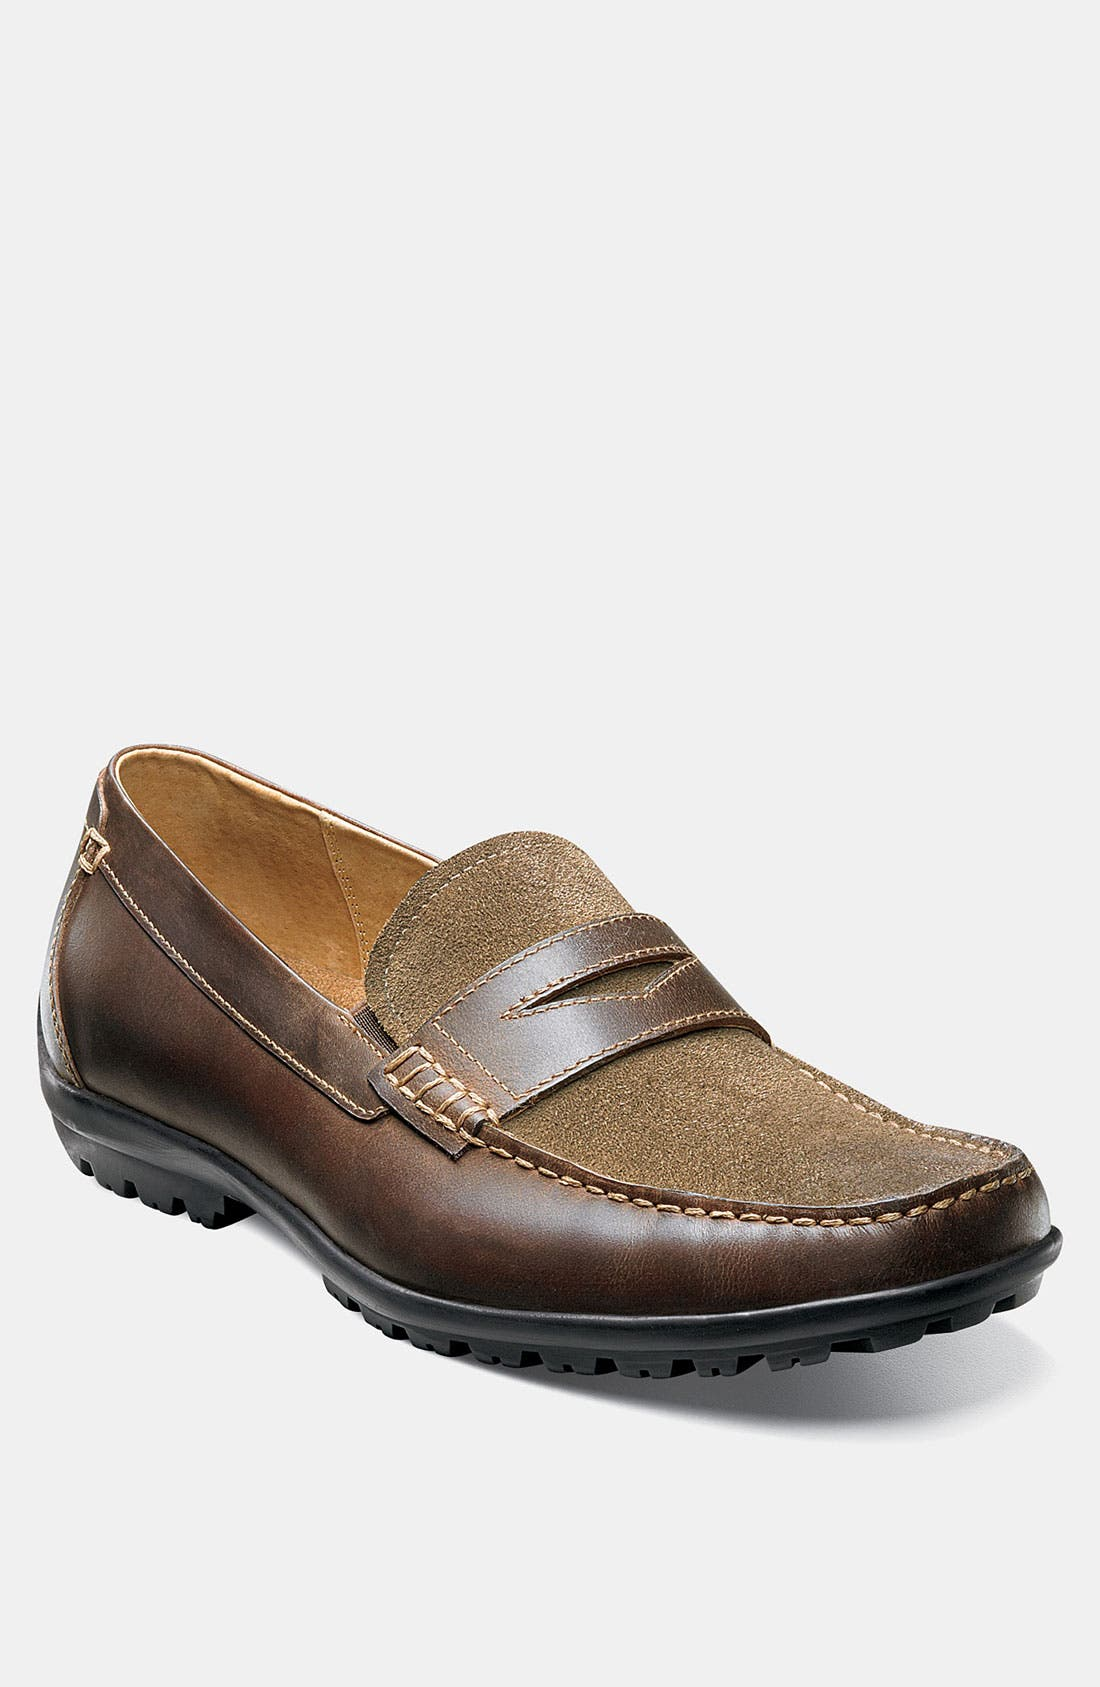 Alternate Image 1 Selected - Florsheim 'Nowles' Penny Loafer